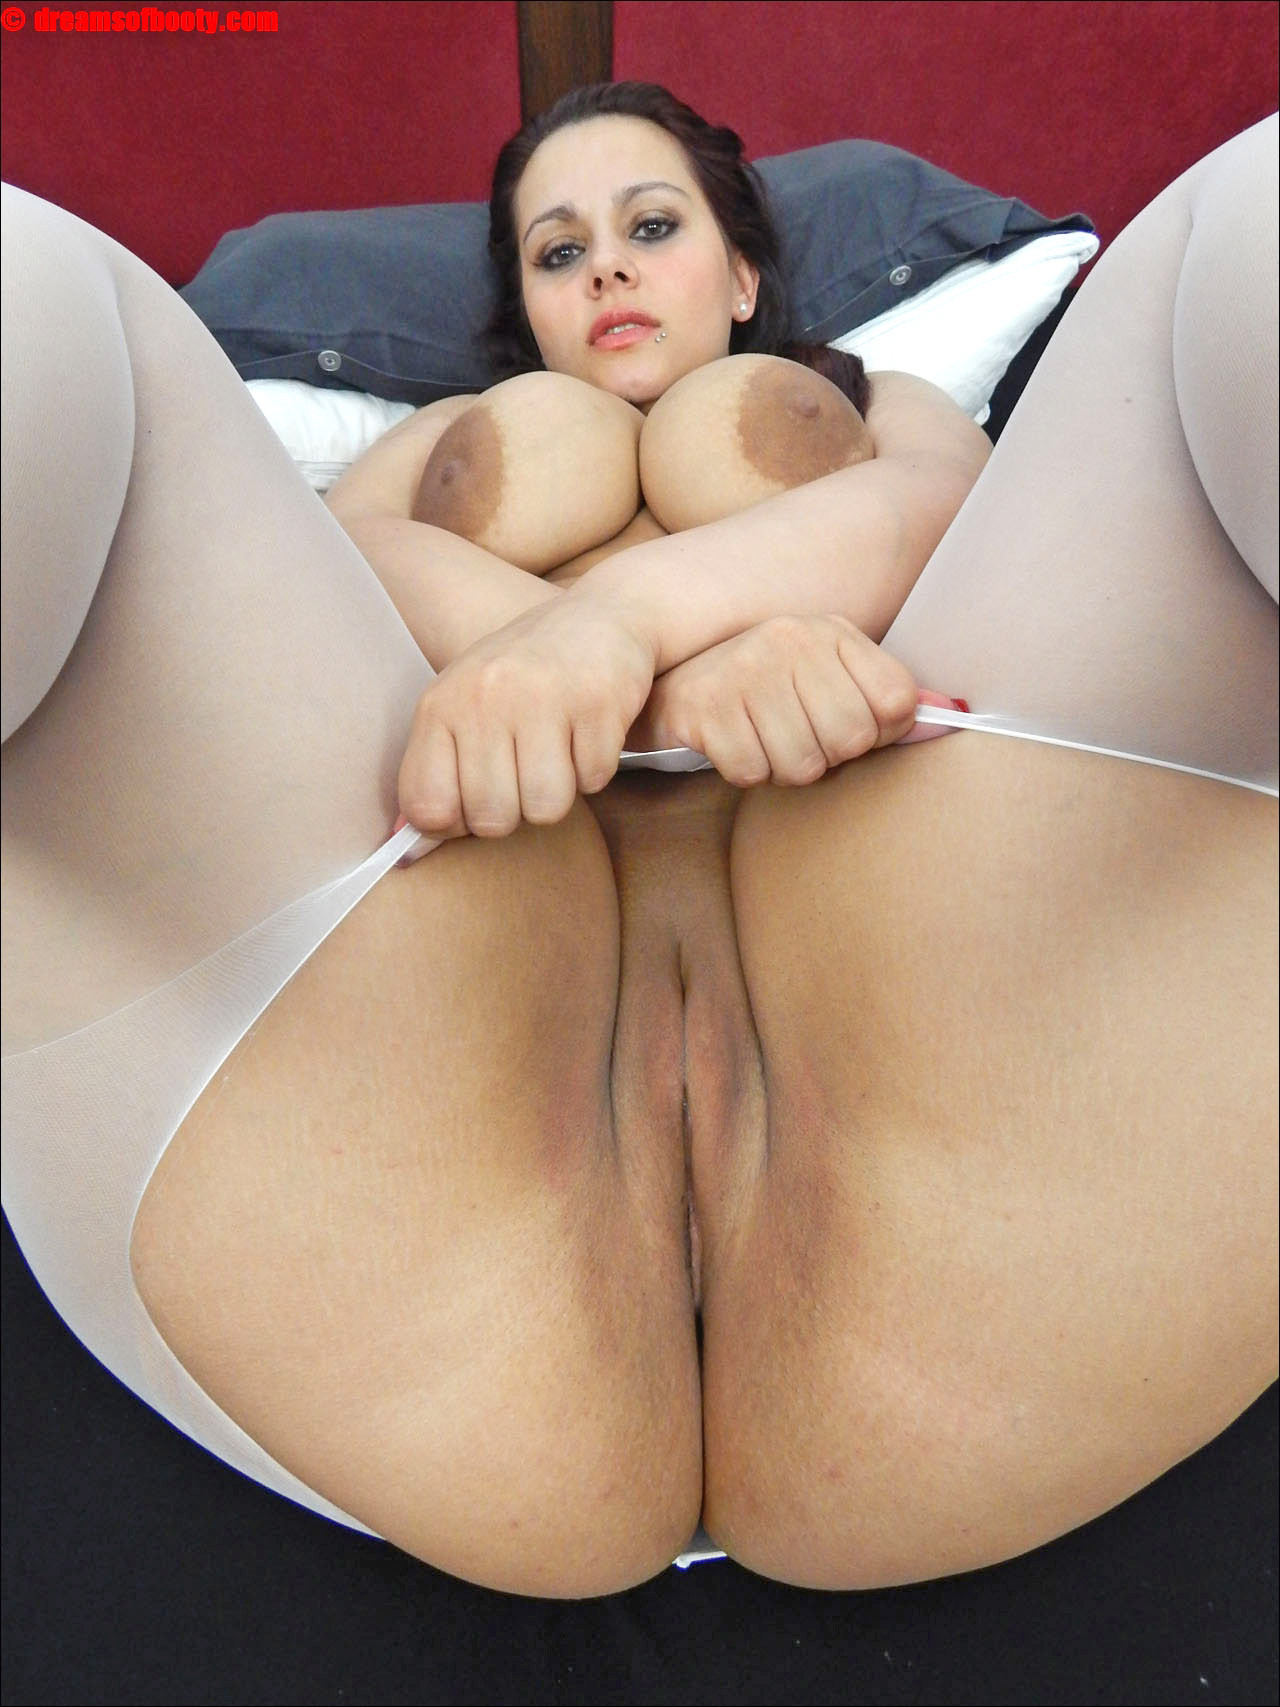 Bbw porn in hd